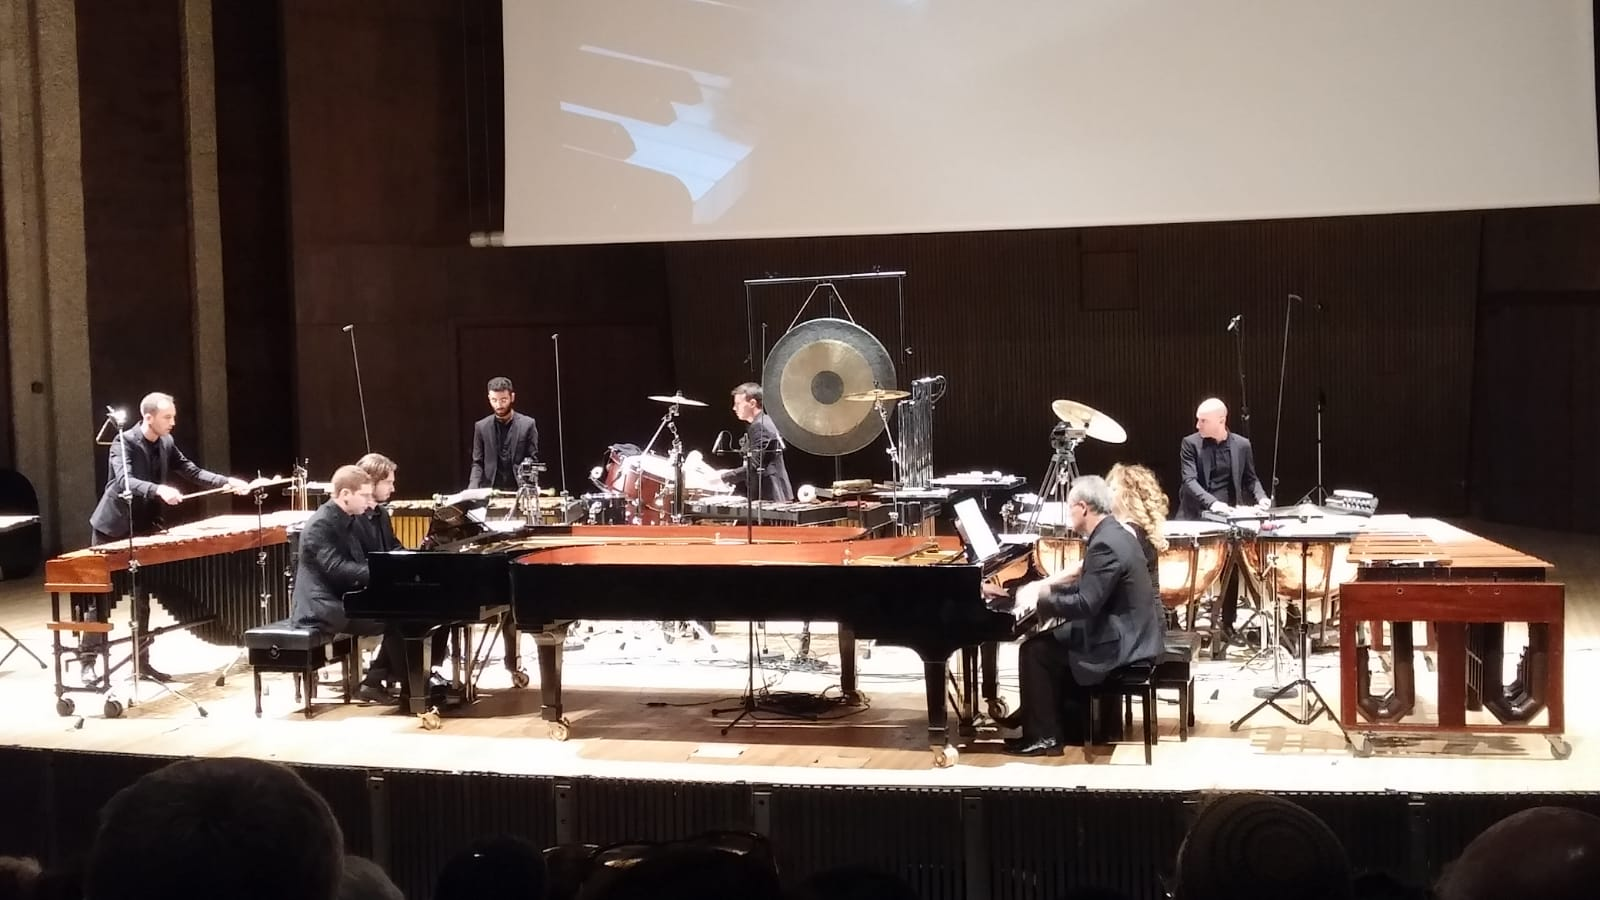 Performing The Planets Suite in Jerusalem (Photo: Francine Herzlich)